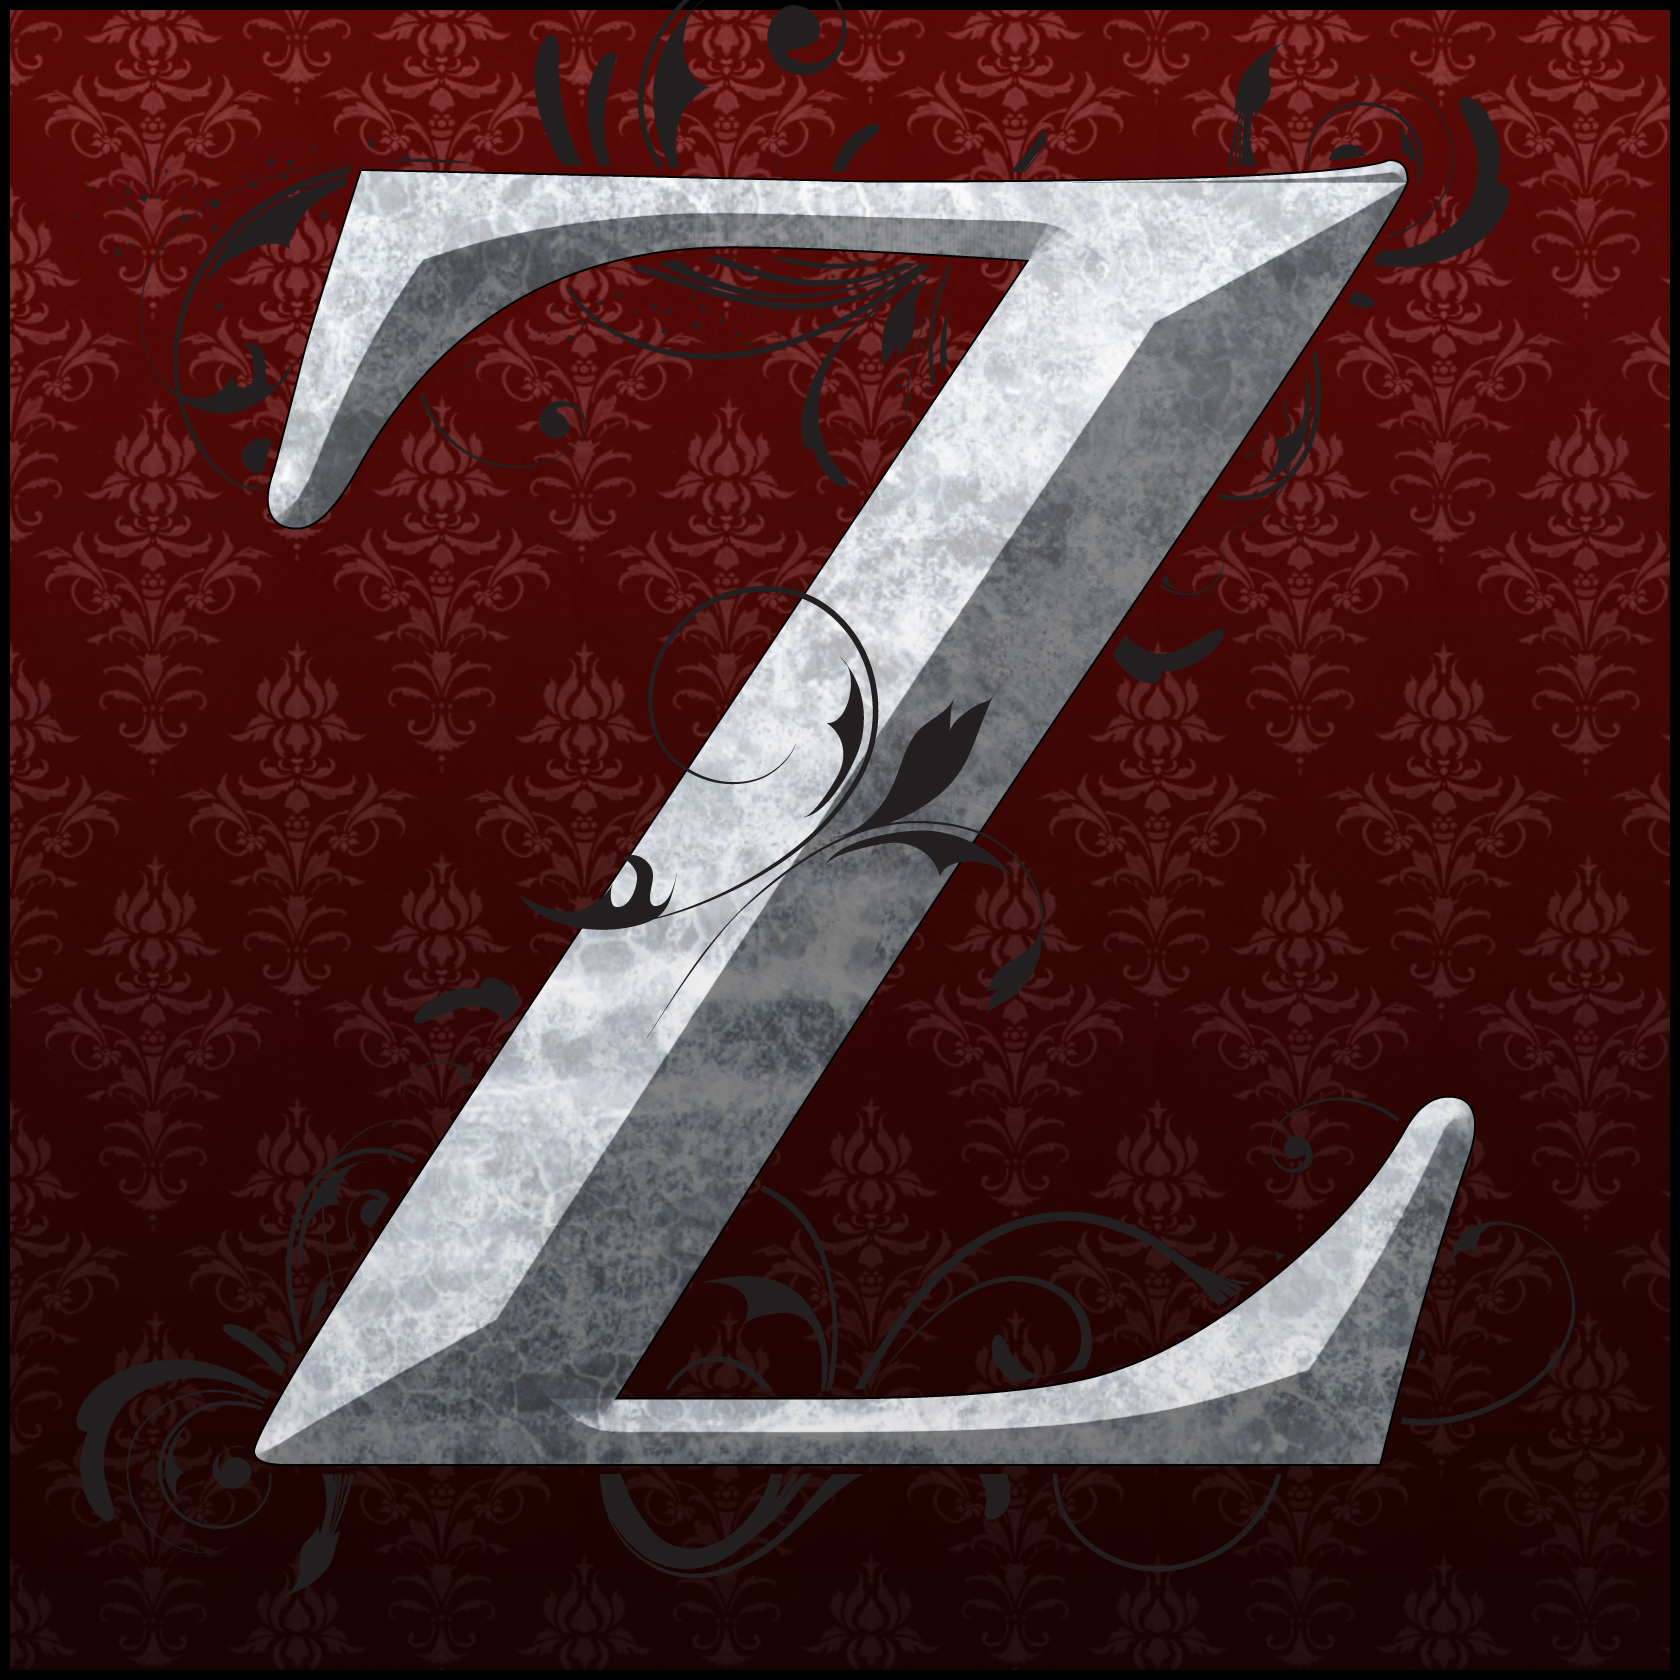 The Letter Z by Muffin-Zack on DeviantArt